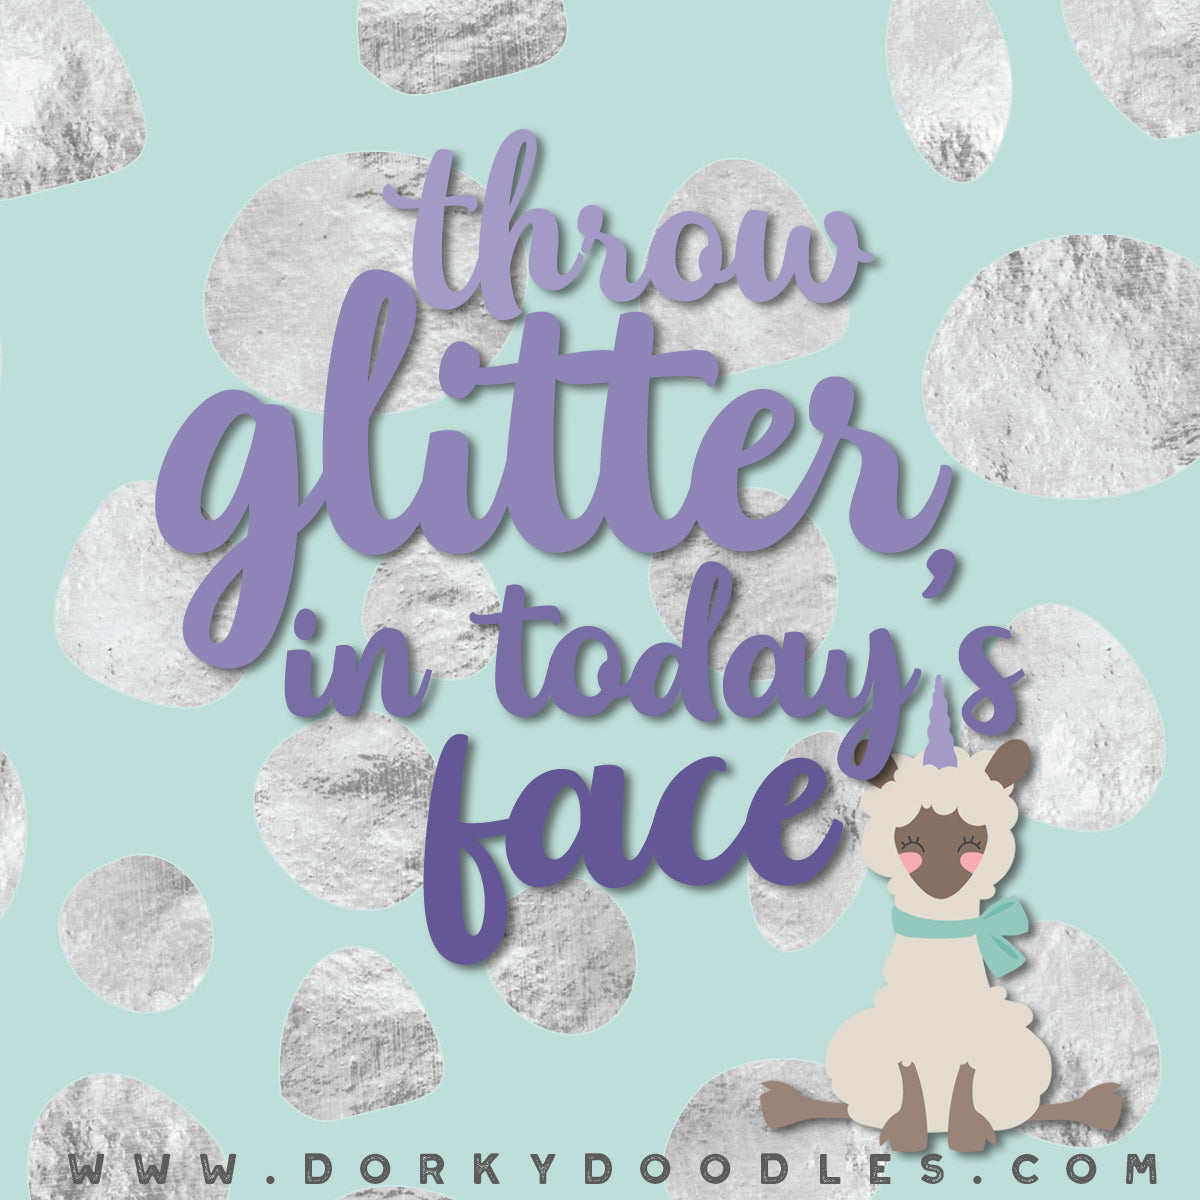 throw glitter in today's face funny motivation